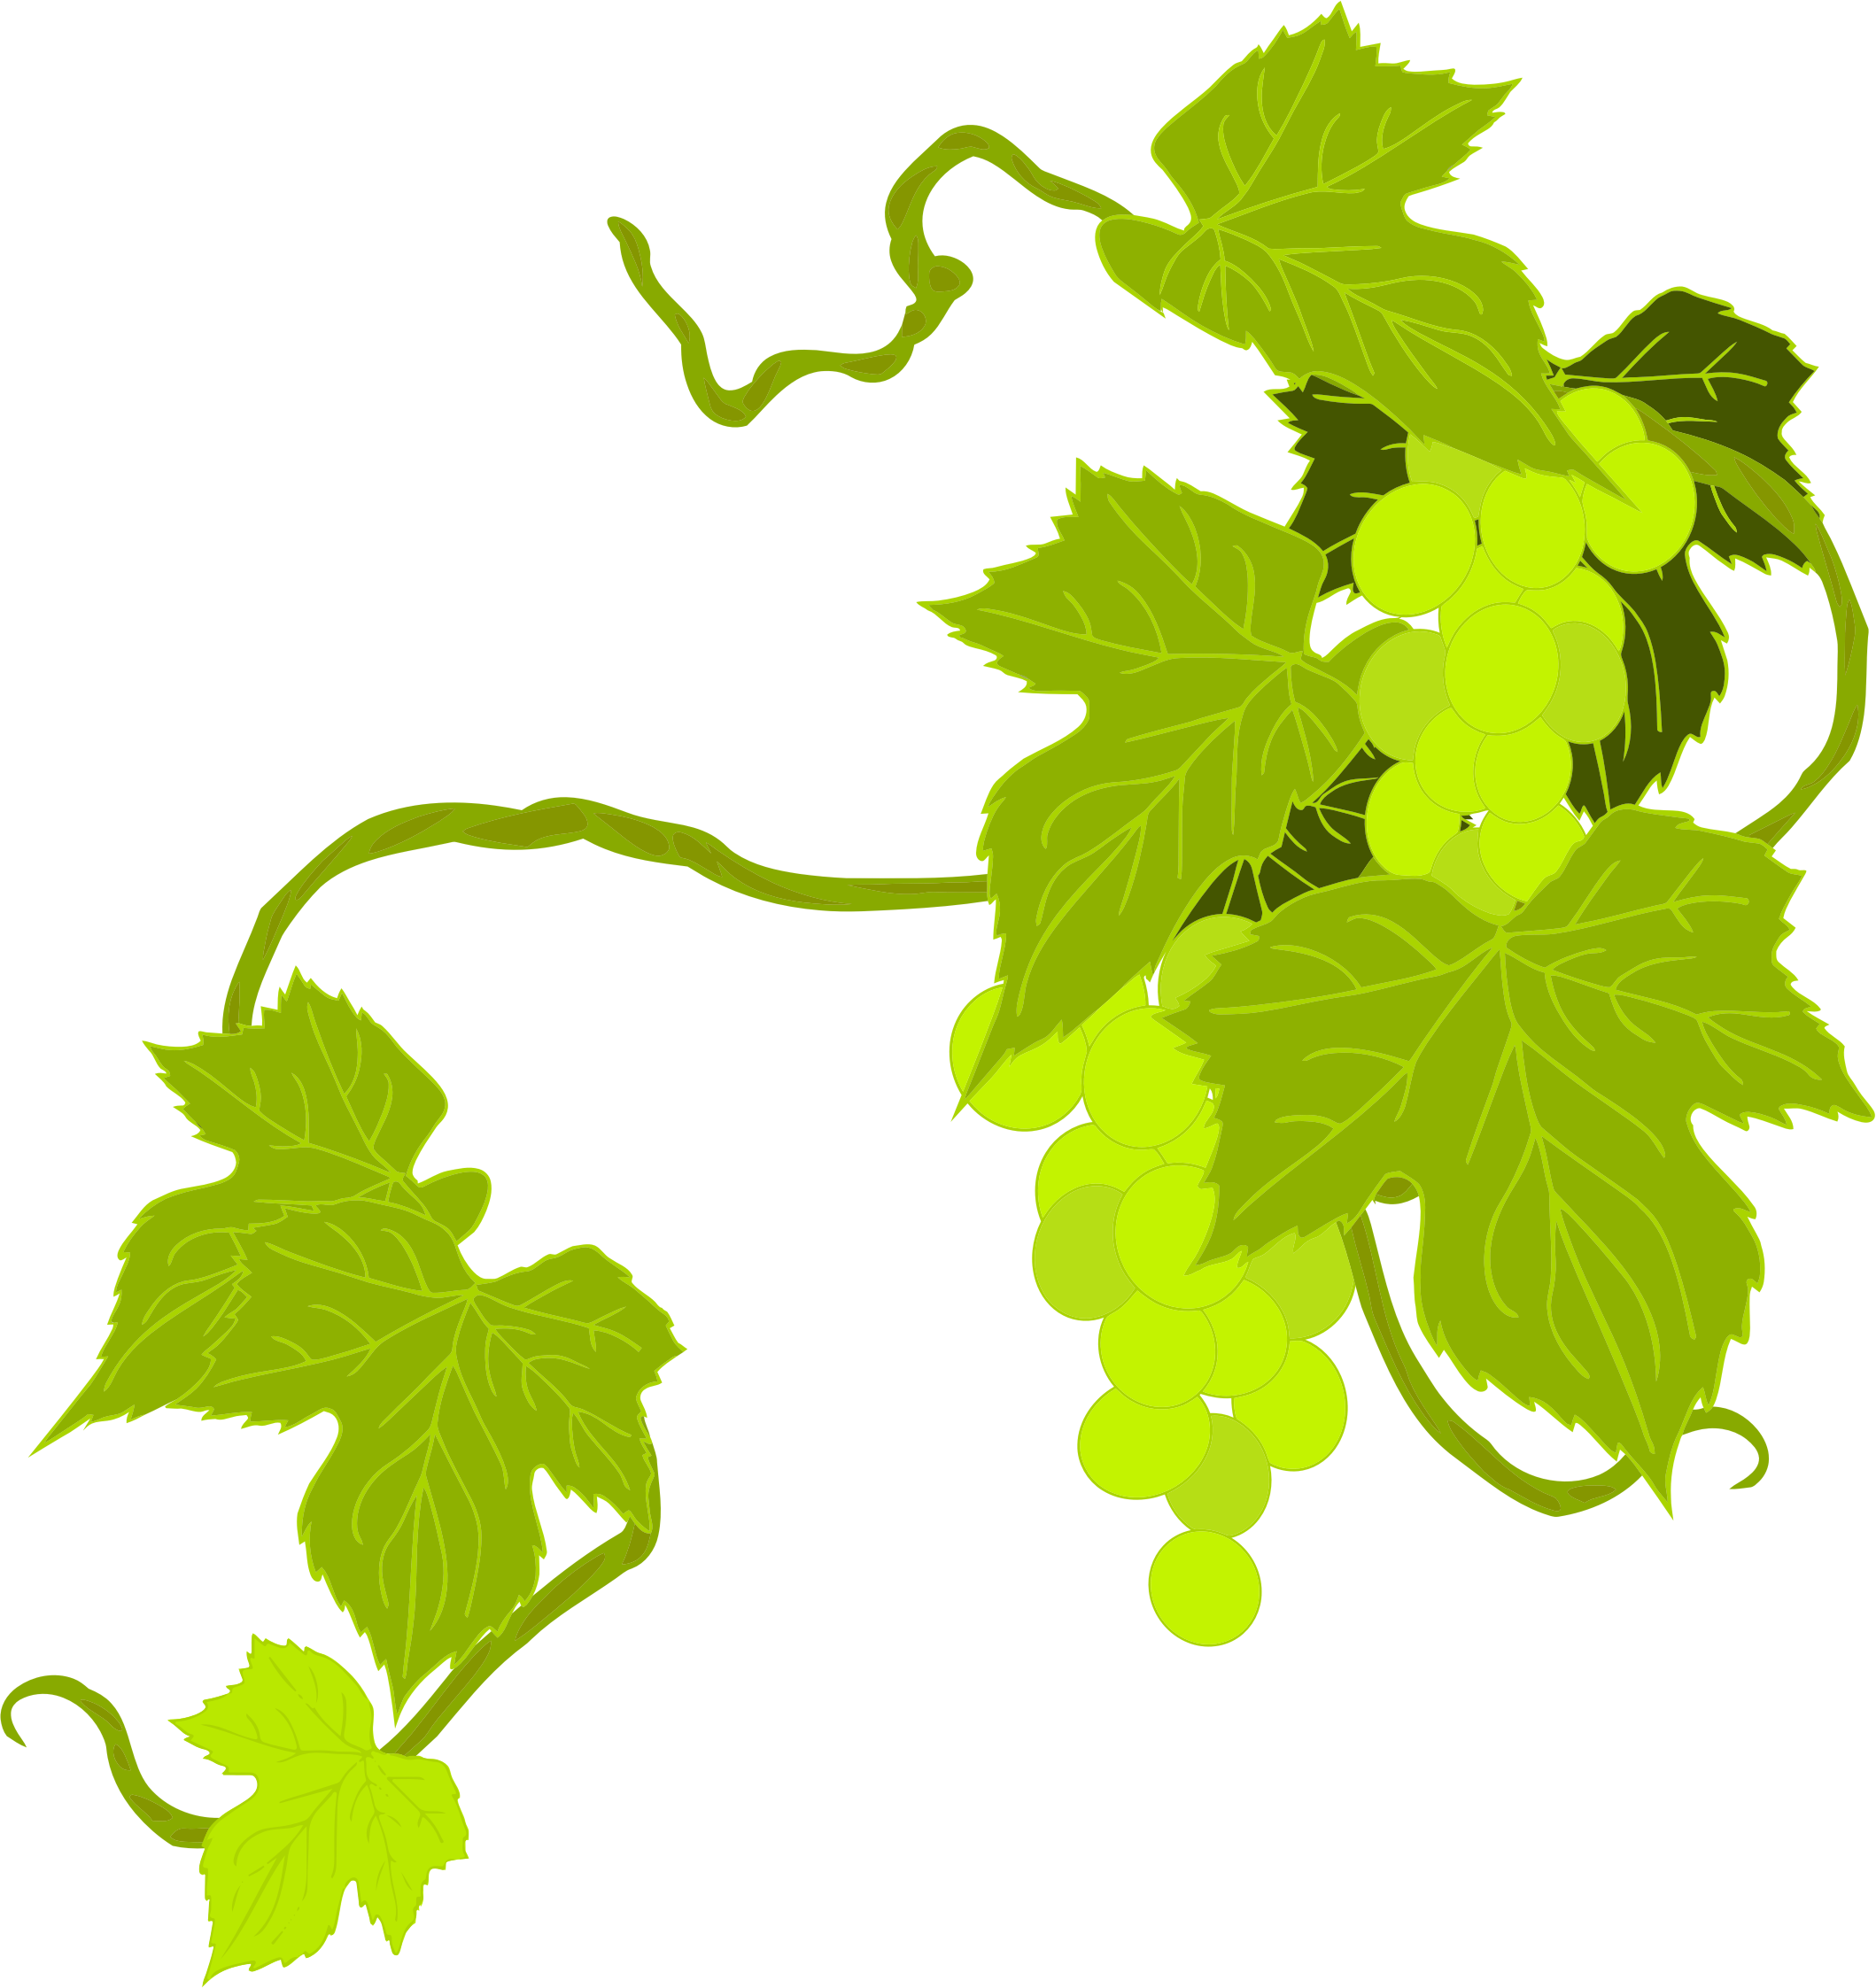 Transparent grapes illustration. Clipart big image png